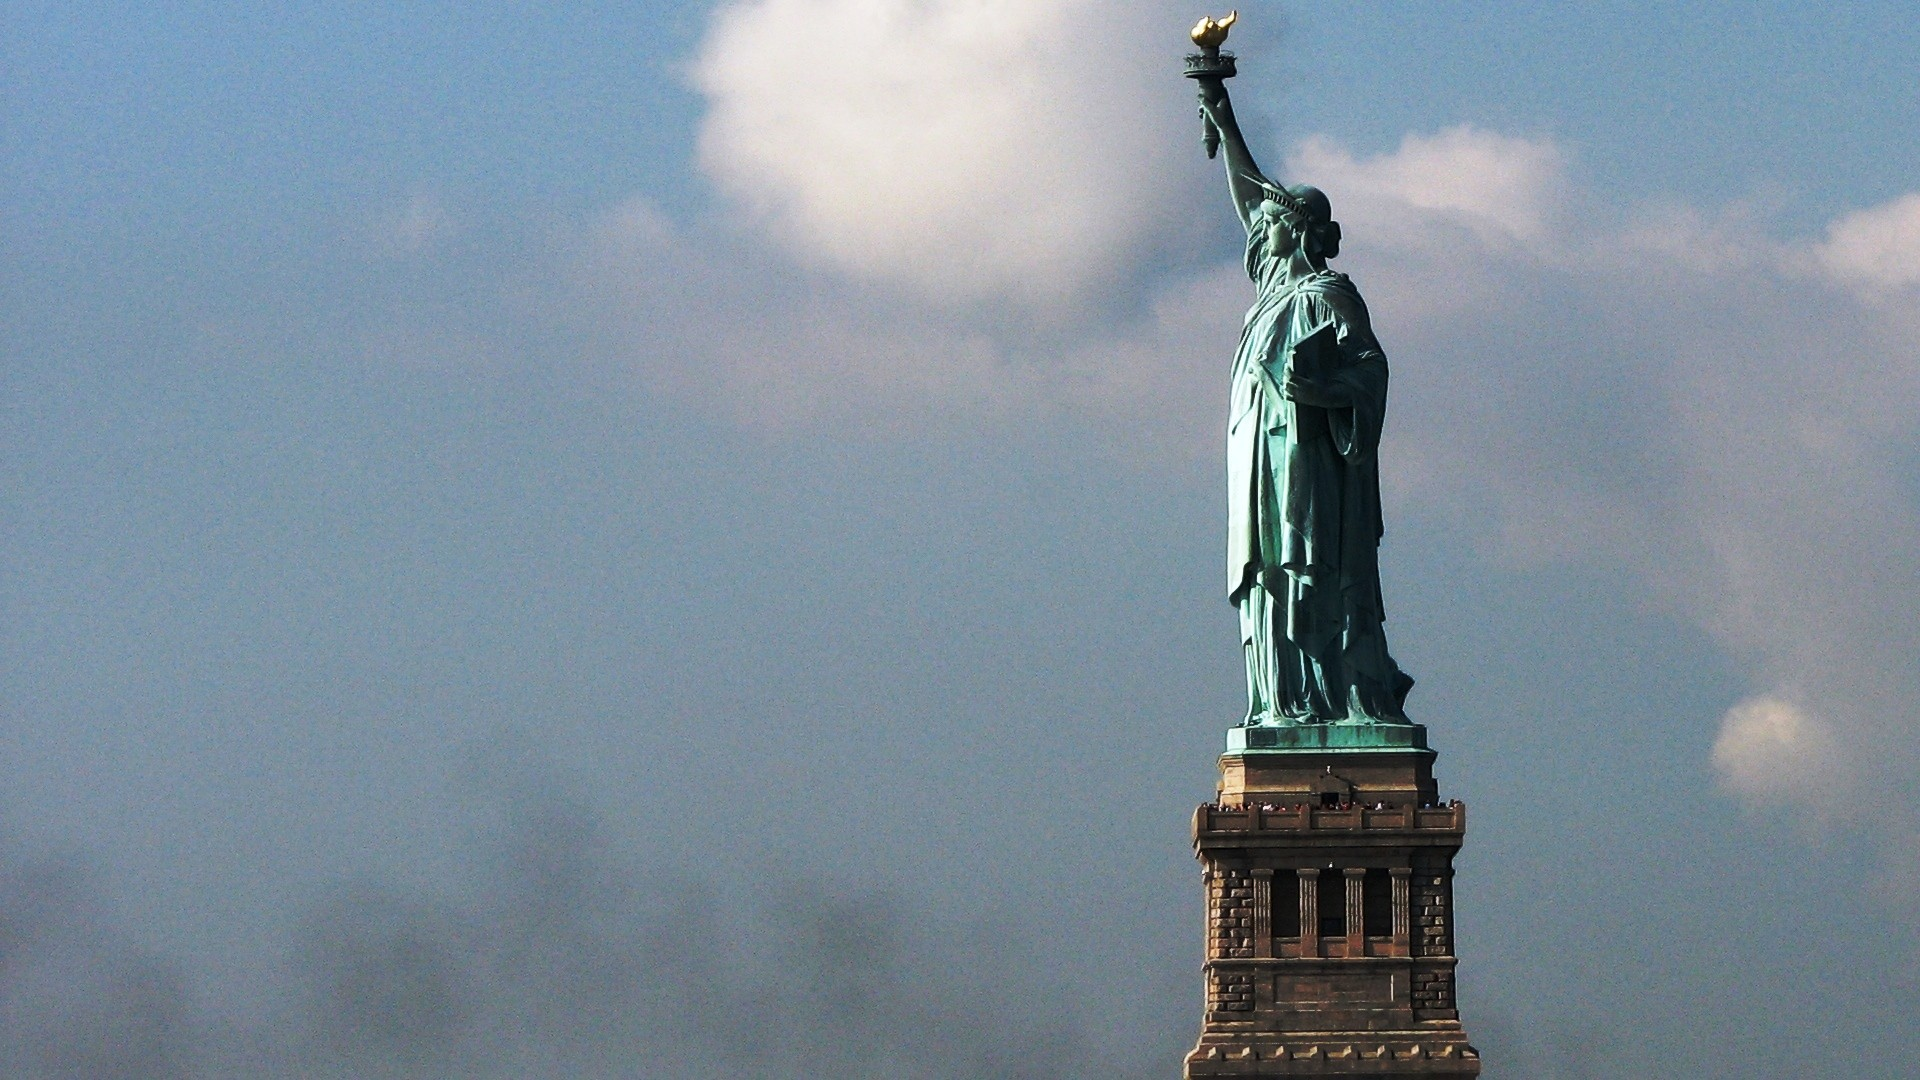 Statue Of Liberty Wallpapers High Quality Download Free